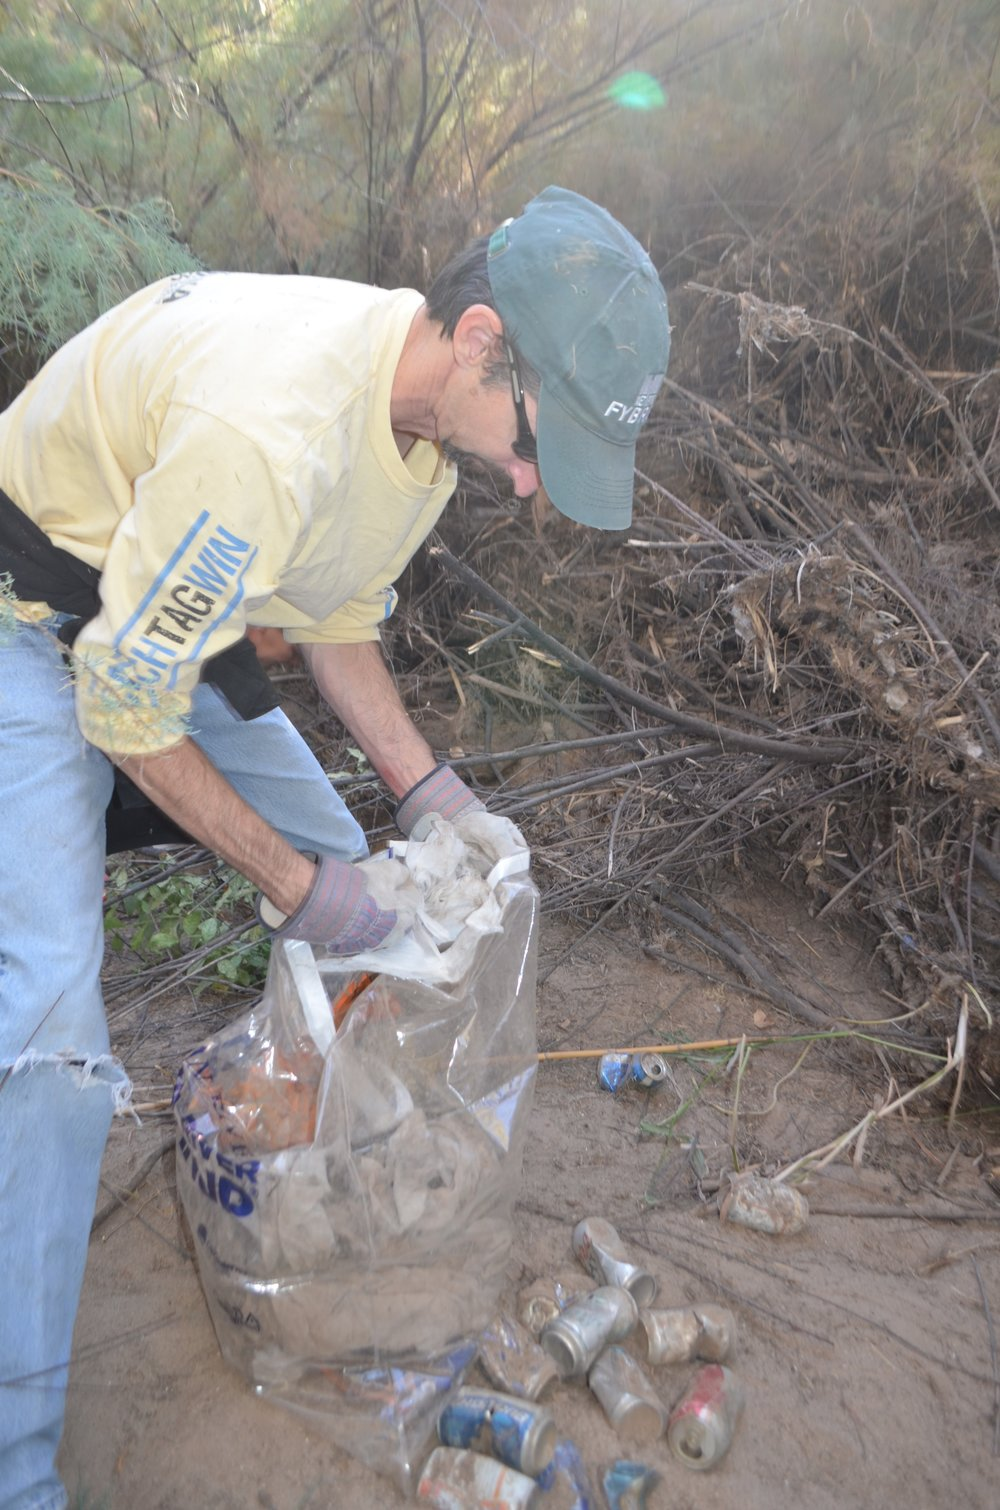 Salt River Cleanup 11-24-17 105.jpg